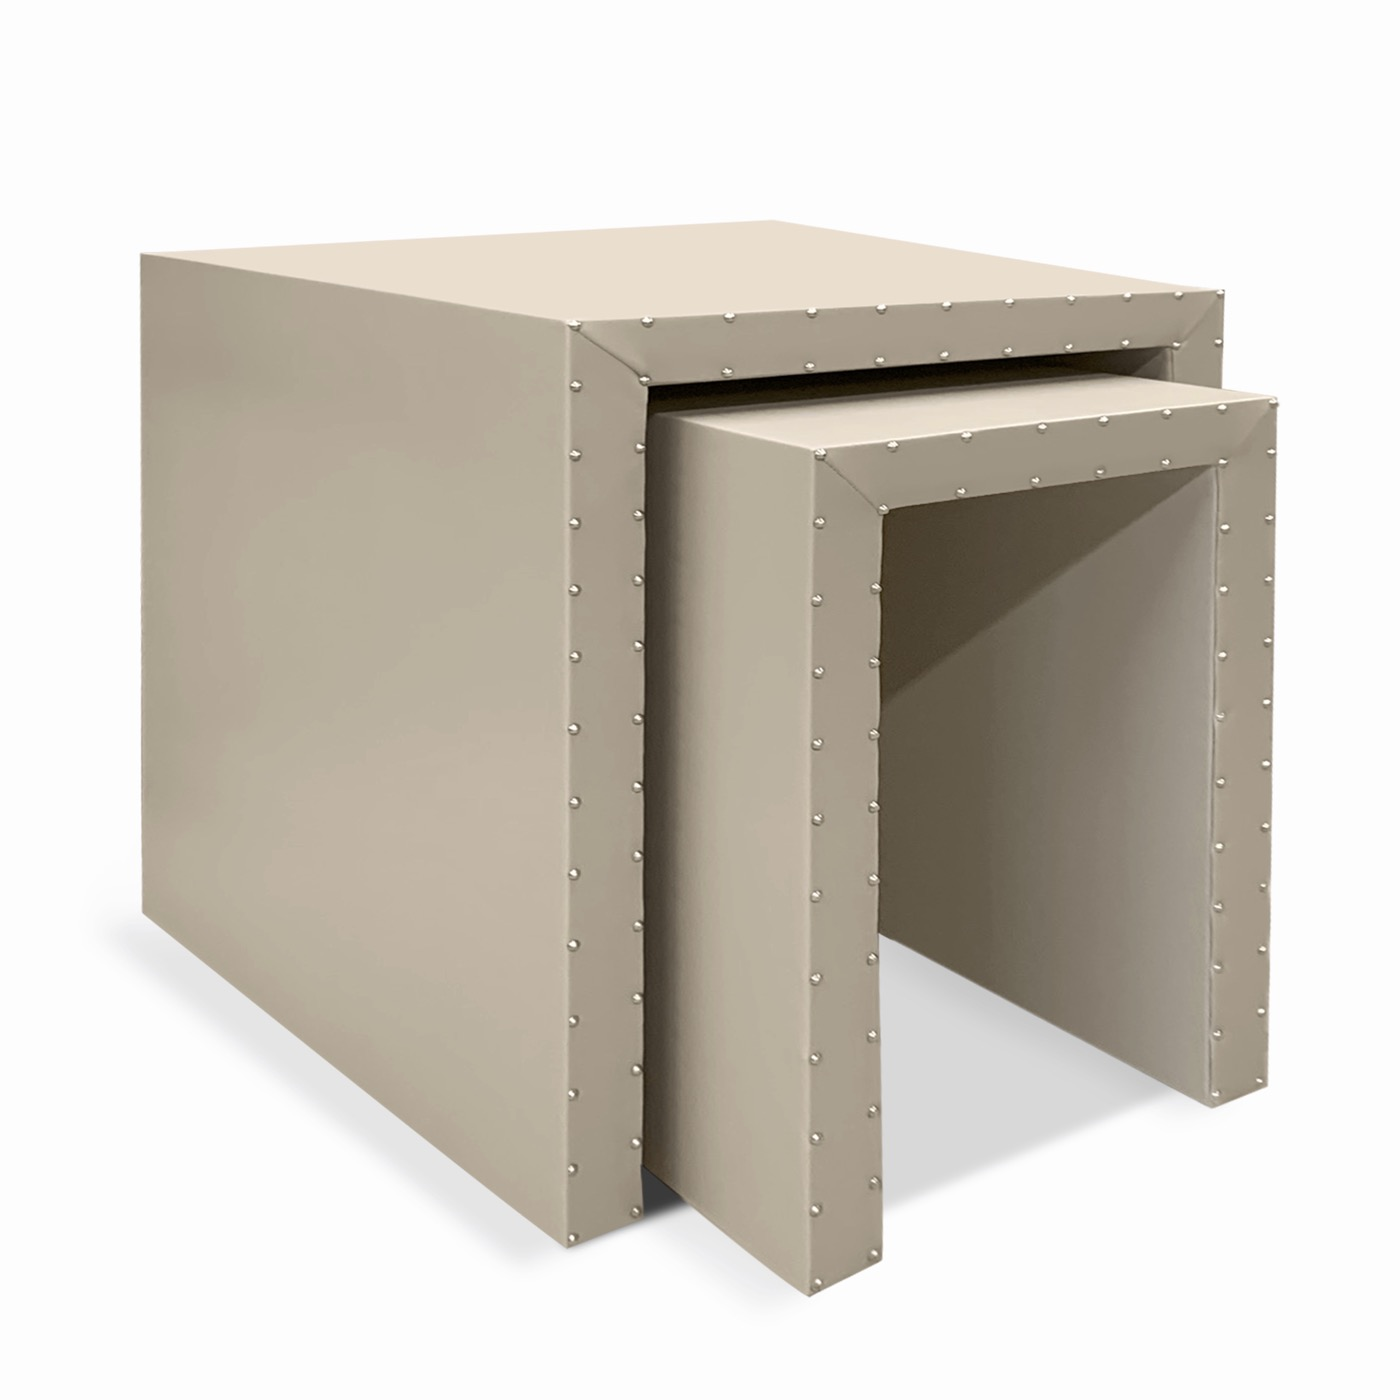 Wade Waterfall Side Table